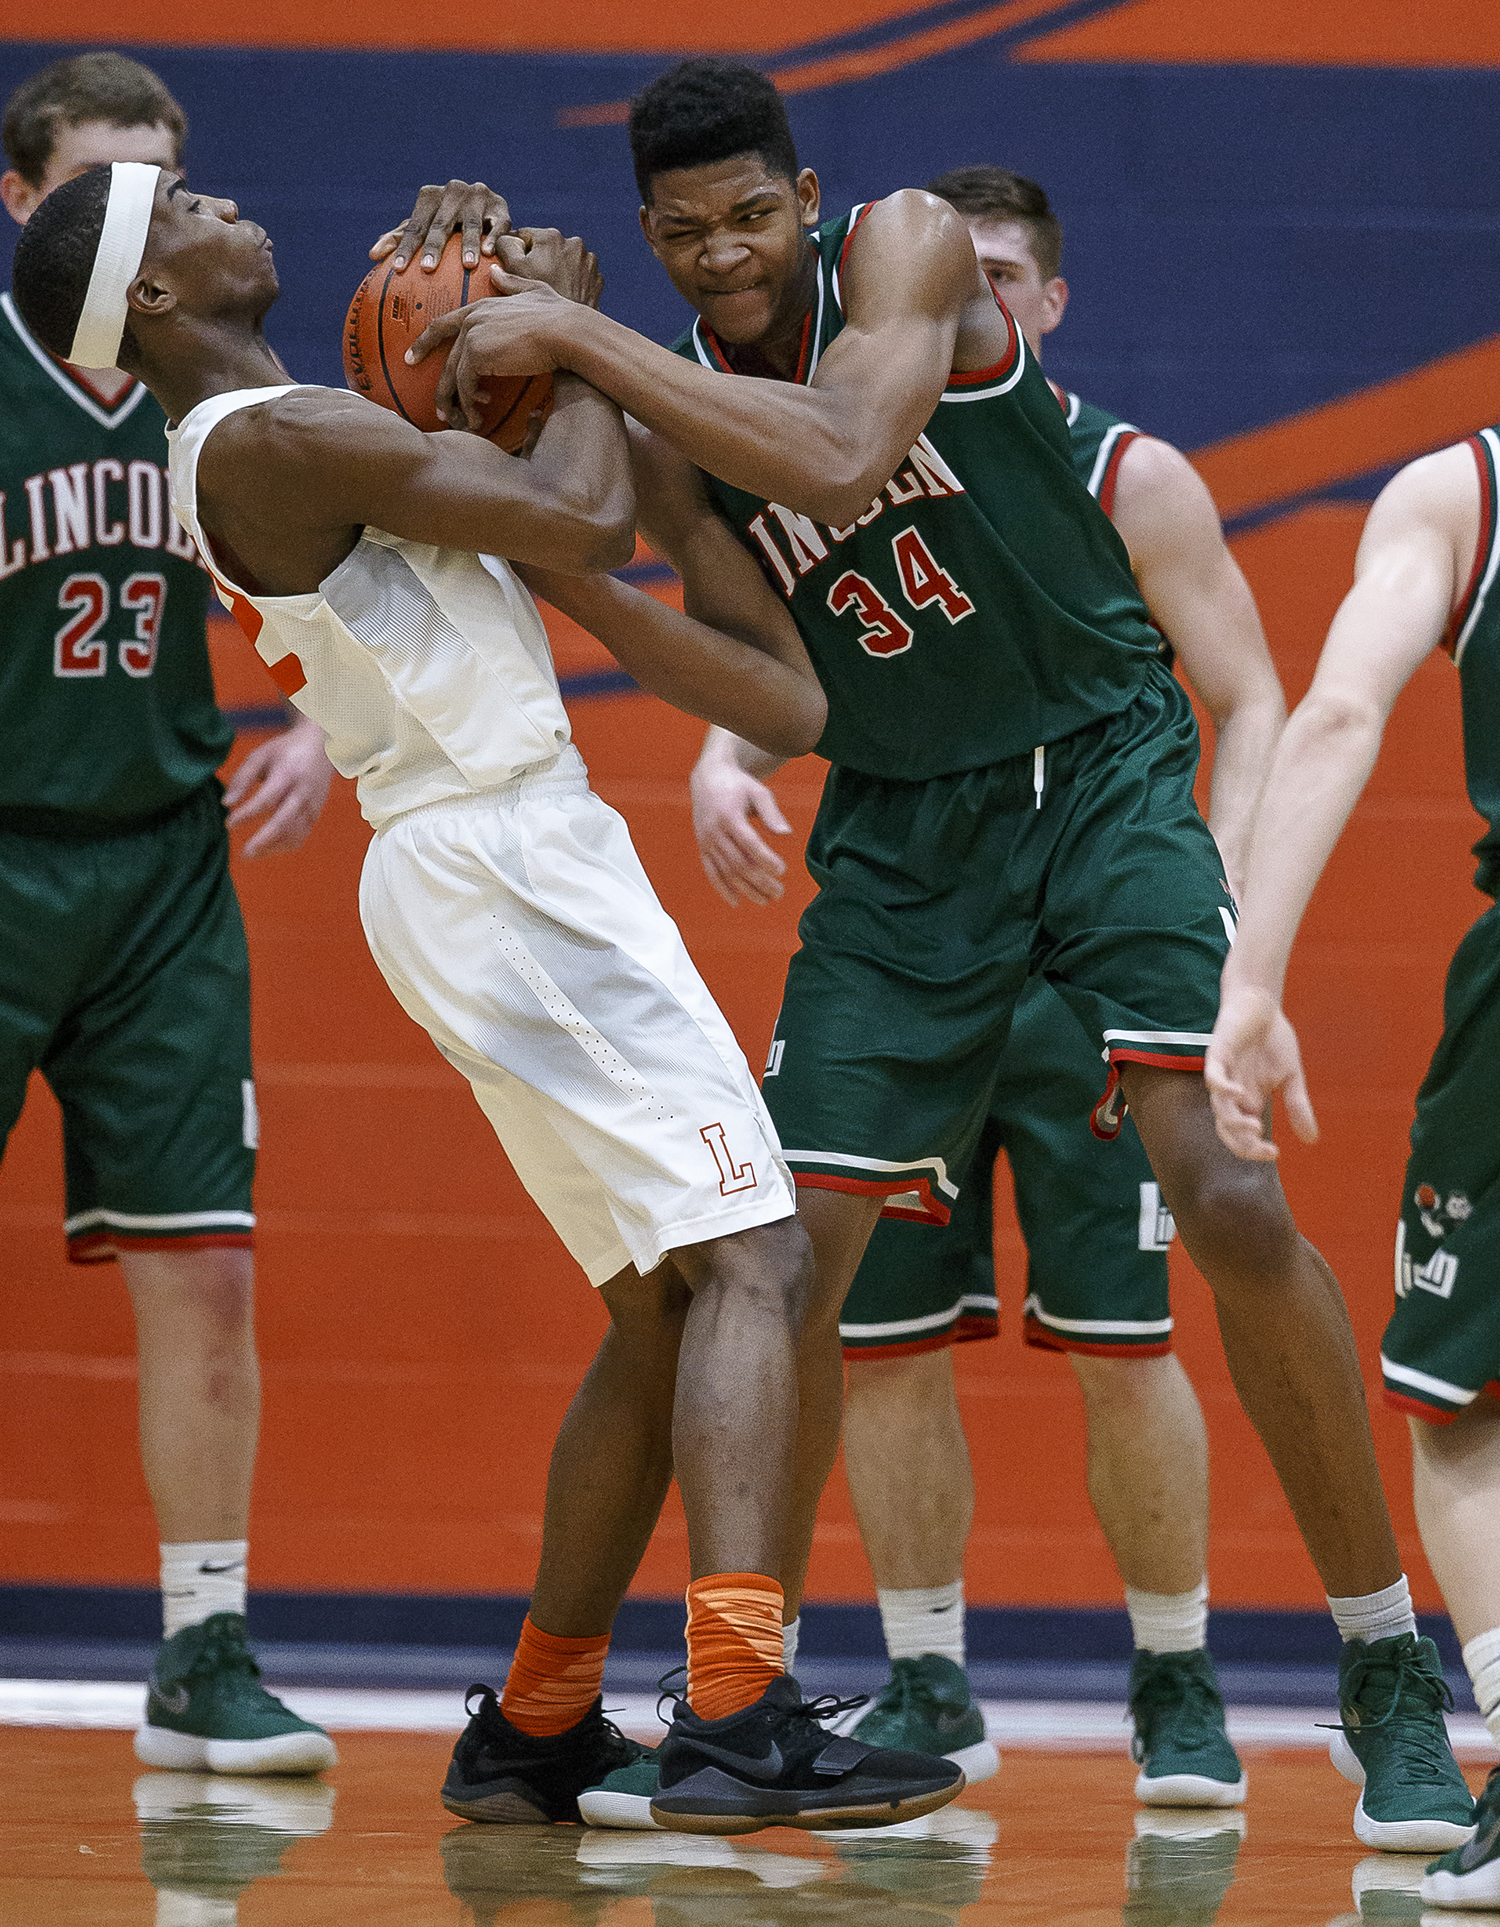 Lanphier's Karl Wright (32) fights for a rebound against Lincoln's Jermaine Hamlin (34) in the first half of the Class 3A Rochester Regional title game at the Rochester Athletic Complex, Friday, March 2, 2018, in Rochester, Ill. [Justin L. Fowler/The State Journal-Register]